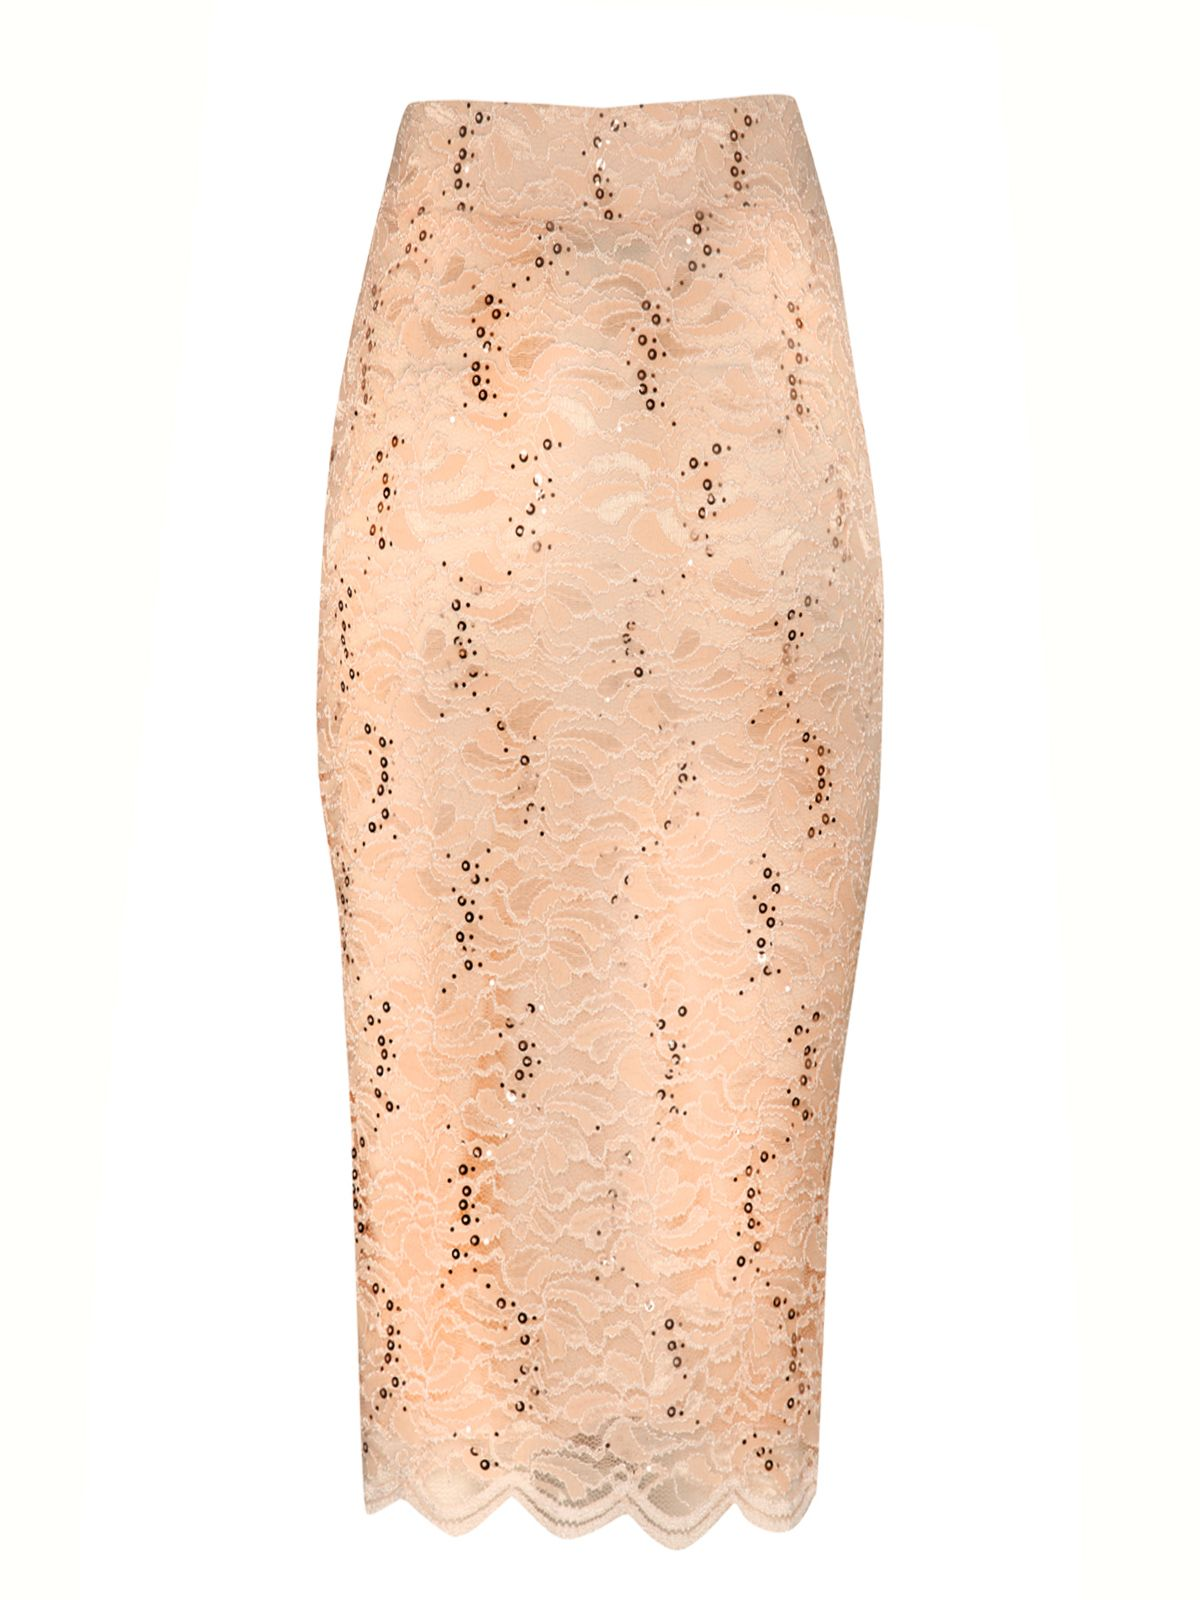 Sequin lace pencil skirt